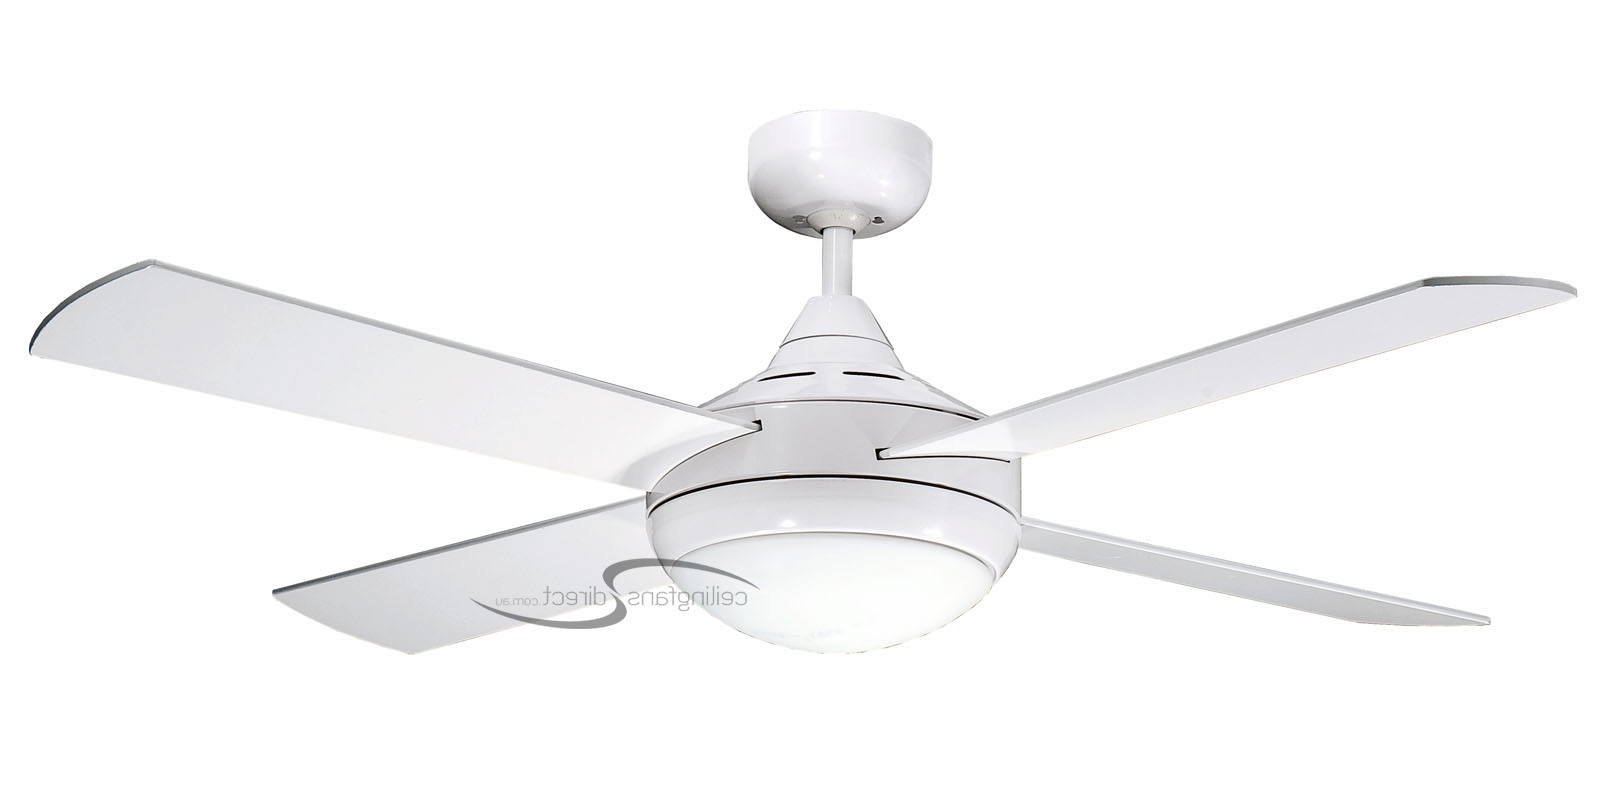 Fashionable White Ceiling Fans With Lights And Remote Control Perfect Outdoor With Outdoor Ceiling Fans With Light And Remote (View 5 of 20)